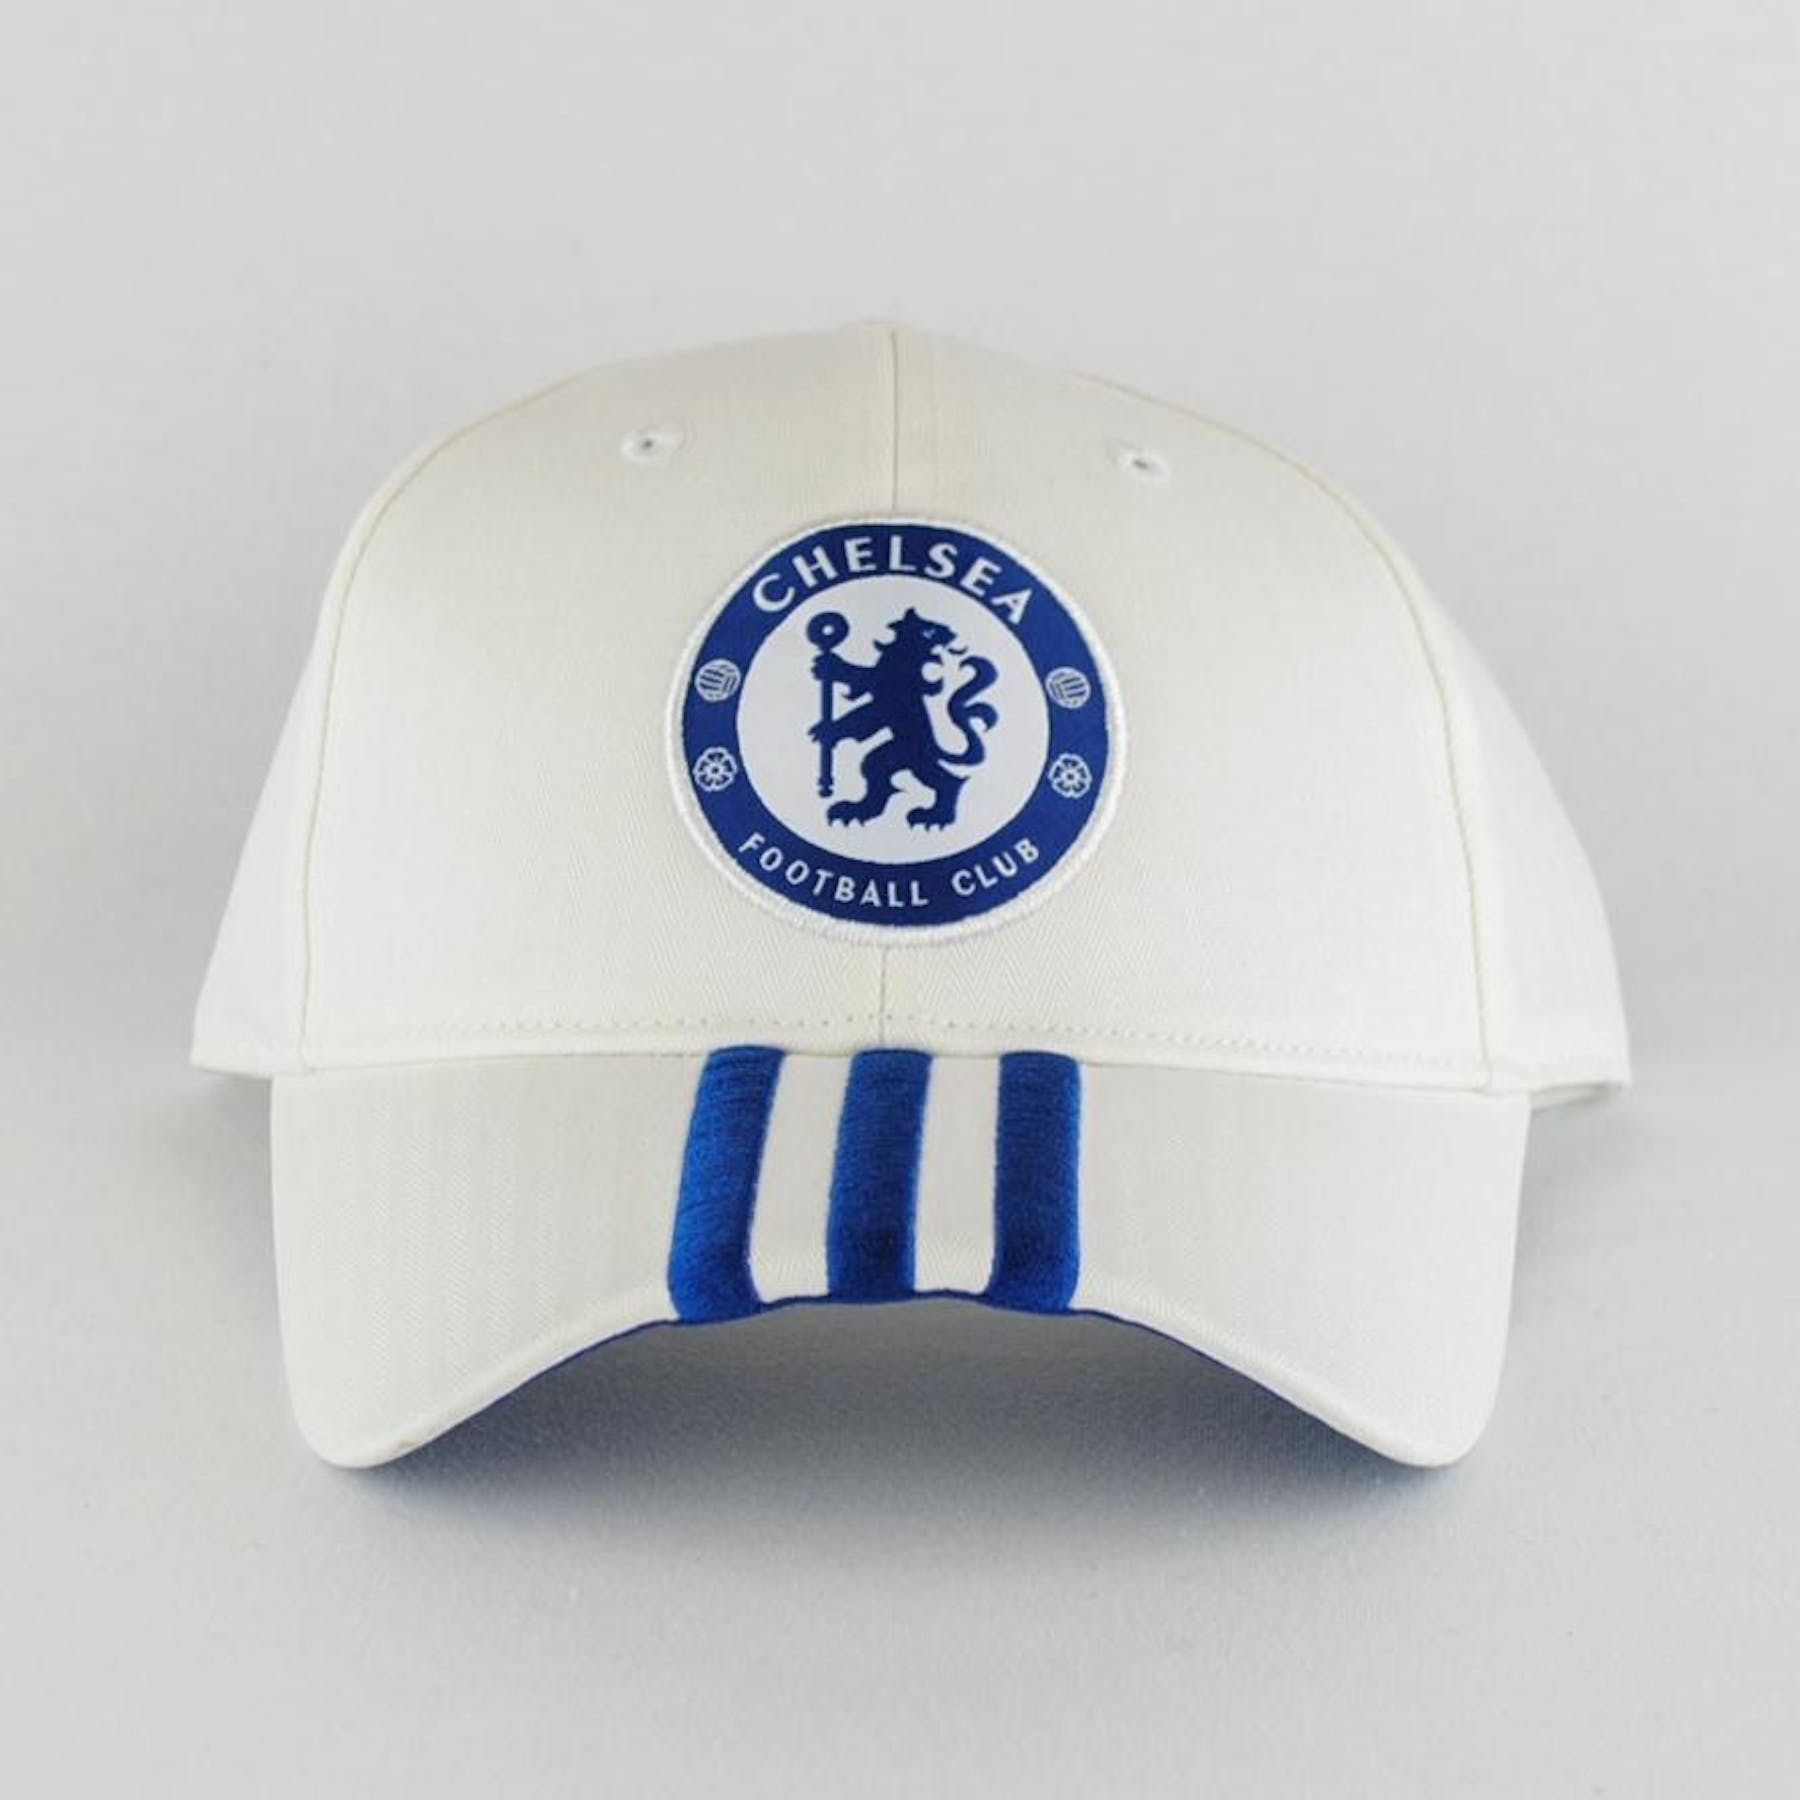 Chelsea Football Club Adidas Soccer White Adjustable Hat (Adult One Size)  7688266b10b